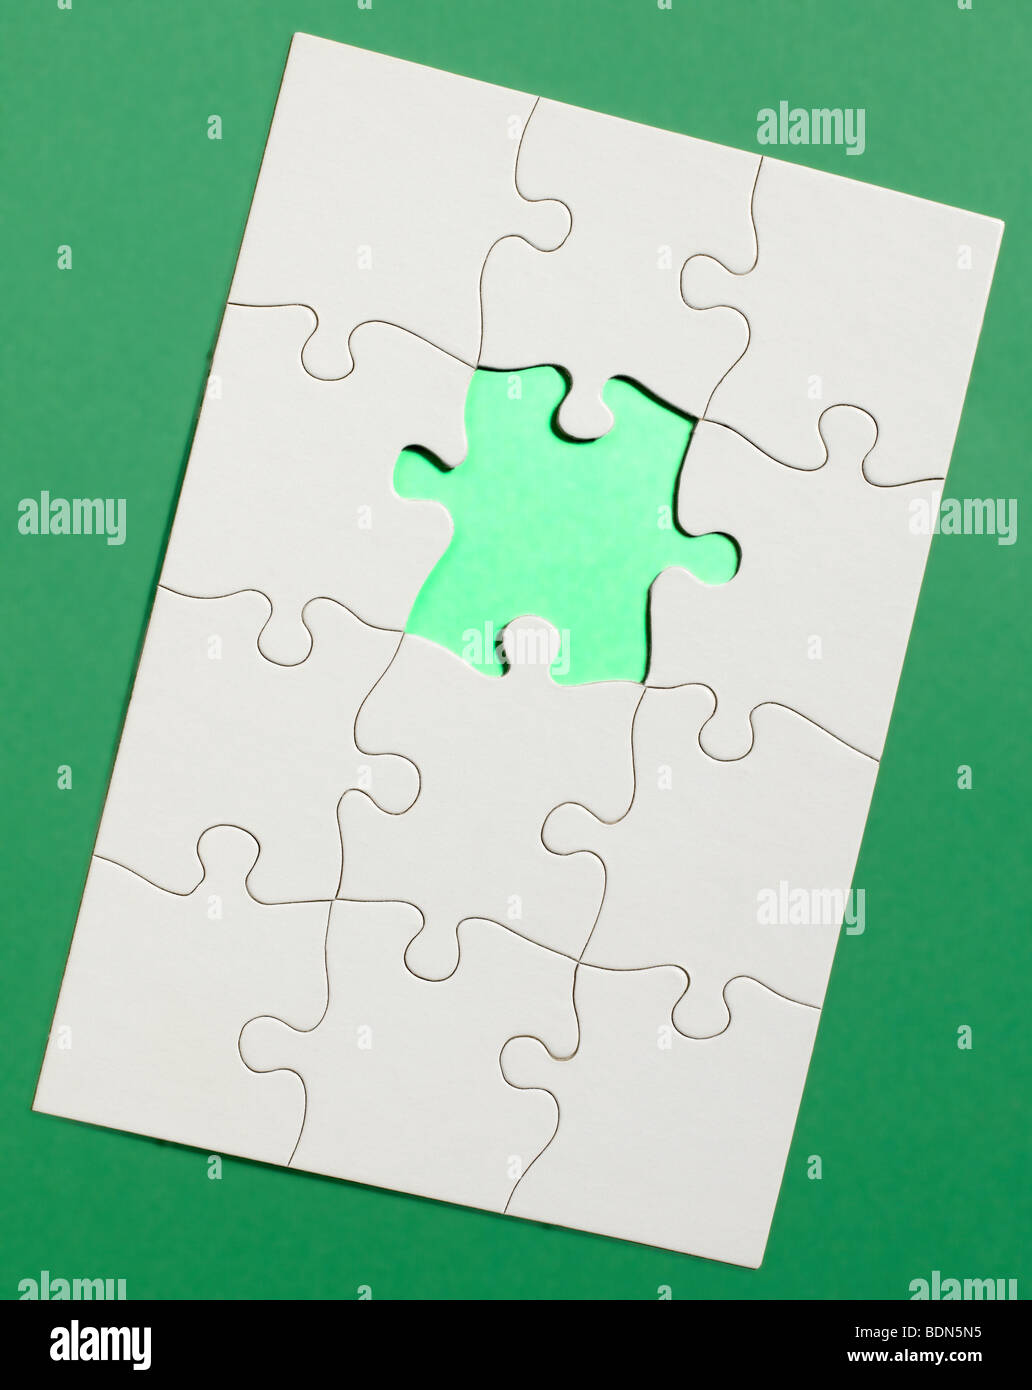 Puzzle Vertical - Stock Image